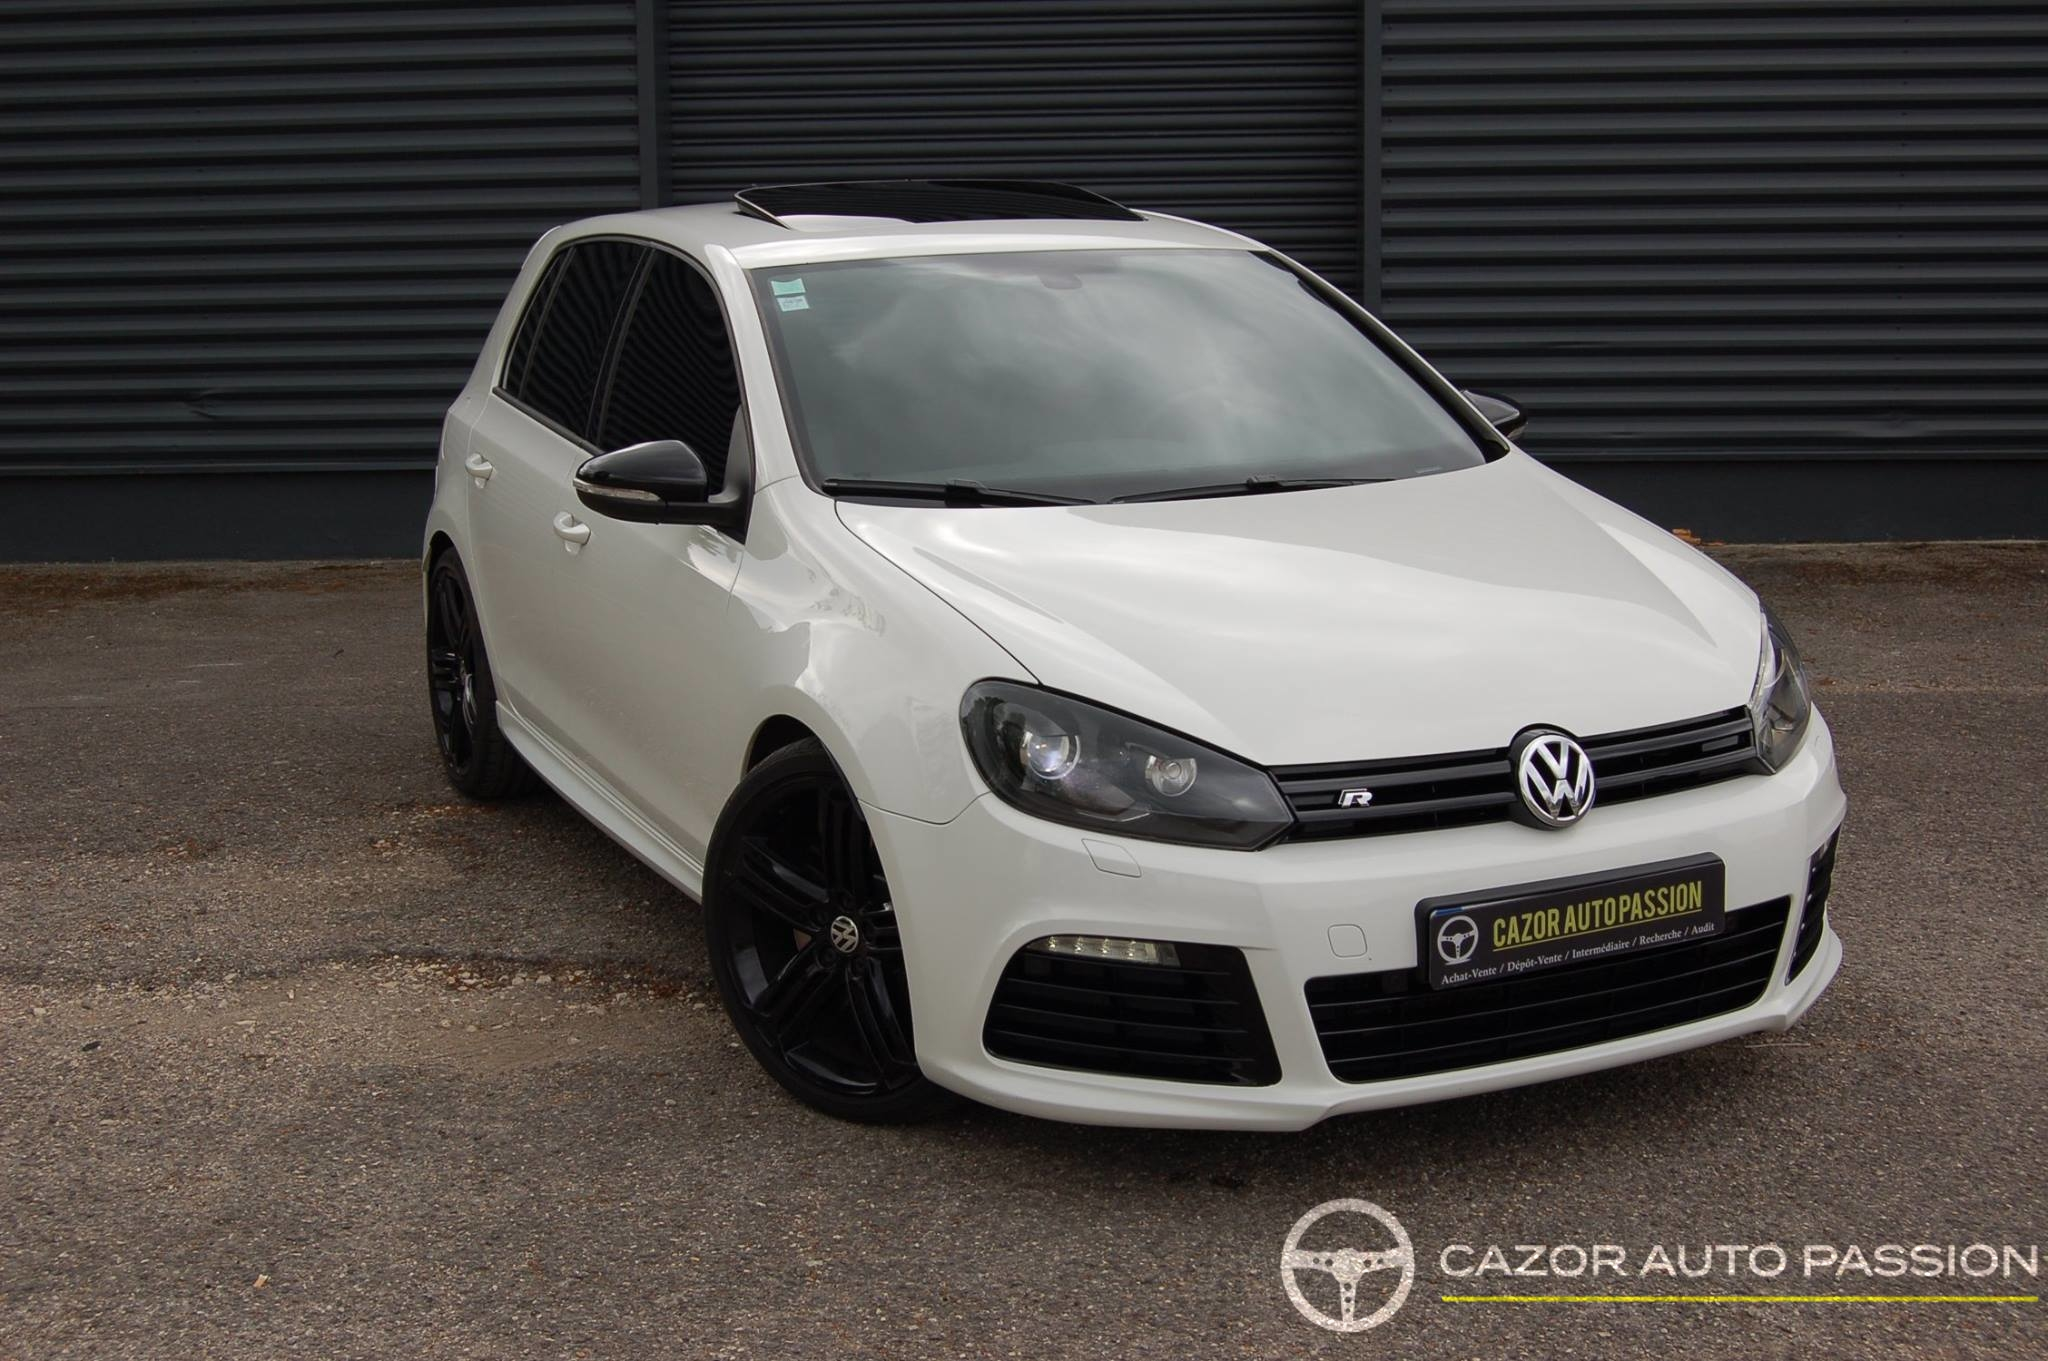 volkswagen golf 6 vi r dsg cazor auto passion. Black Bedroom Furniture Sets. Home Design Ideas